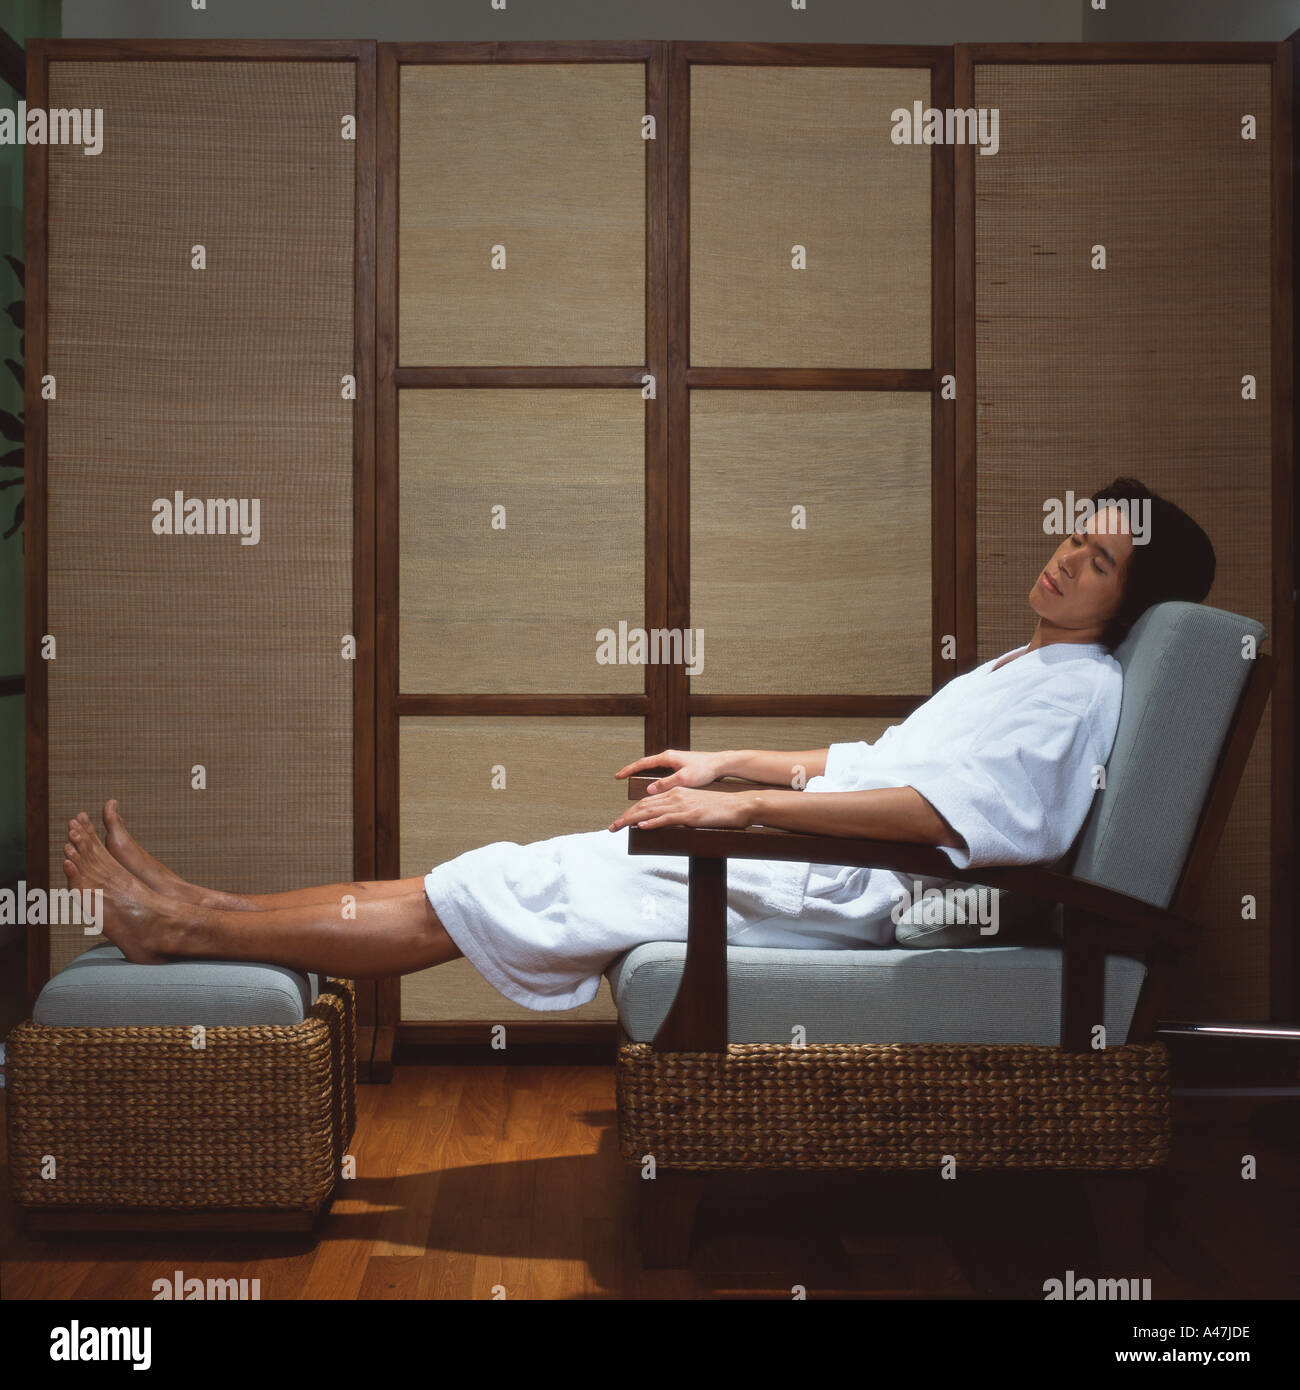 Asian man sleeping in spa - Stock Image